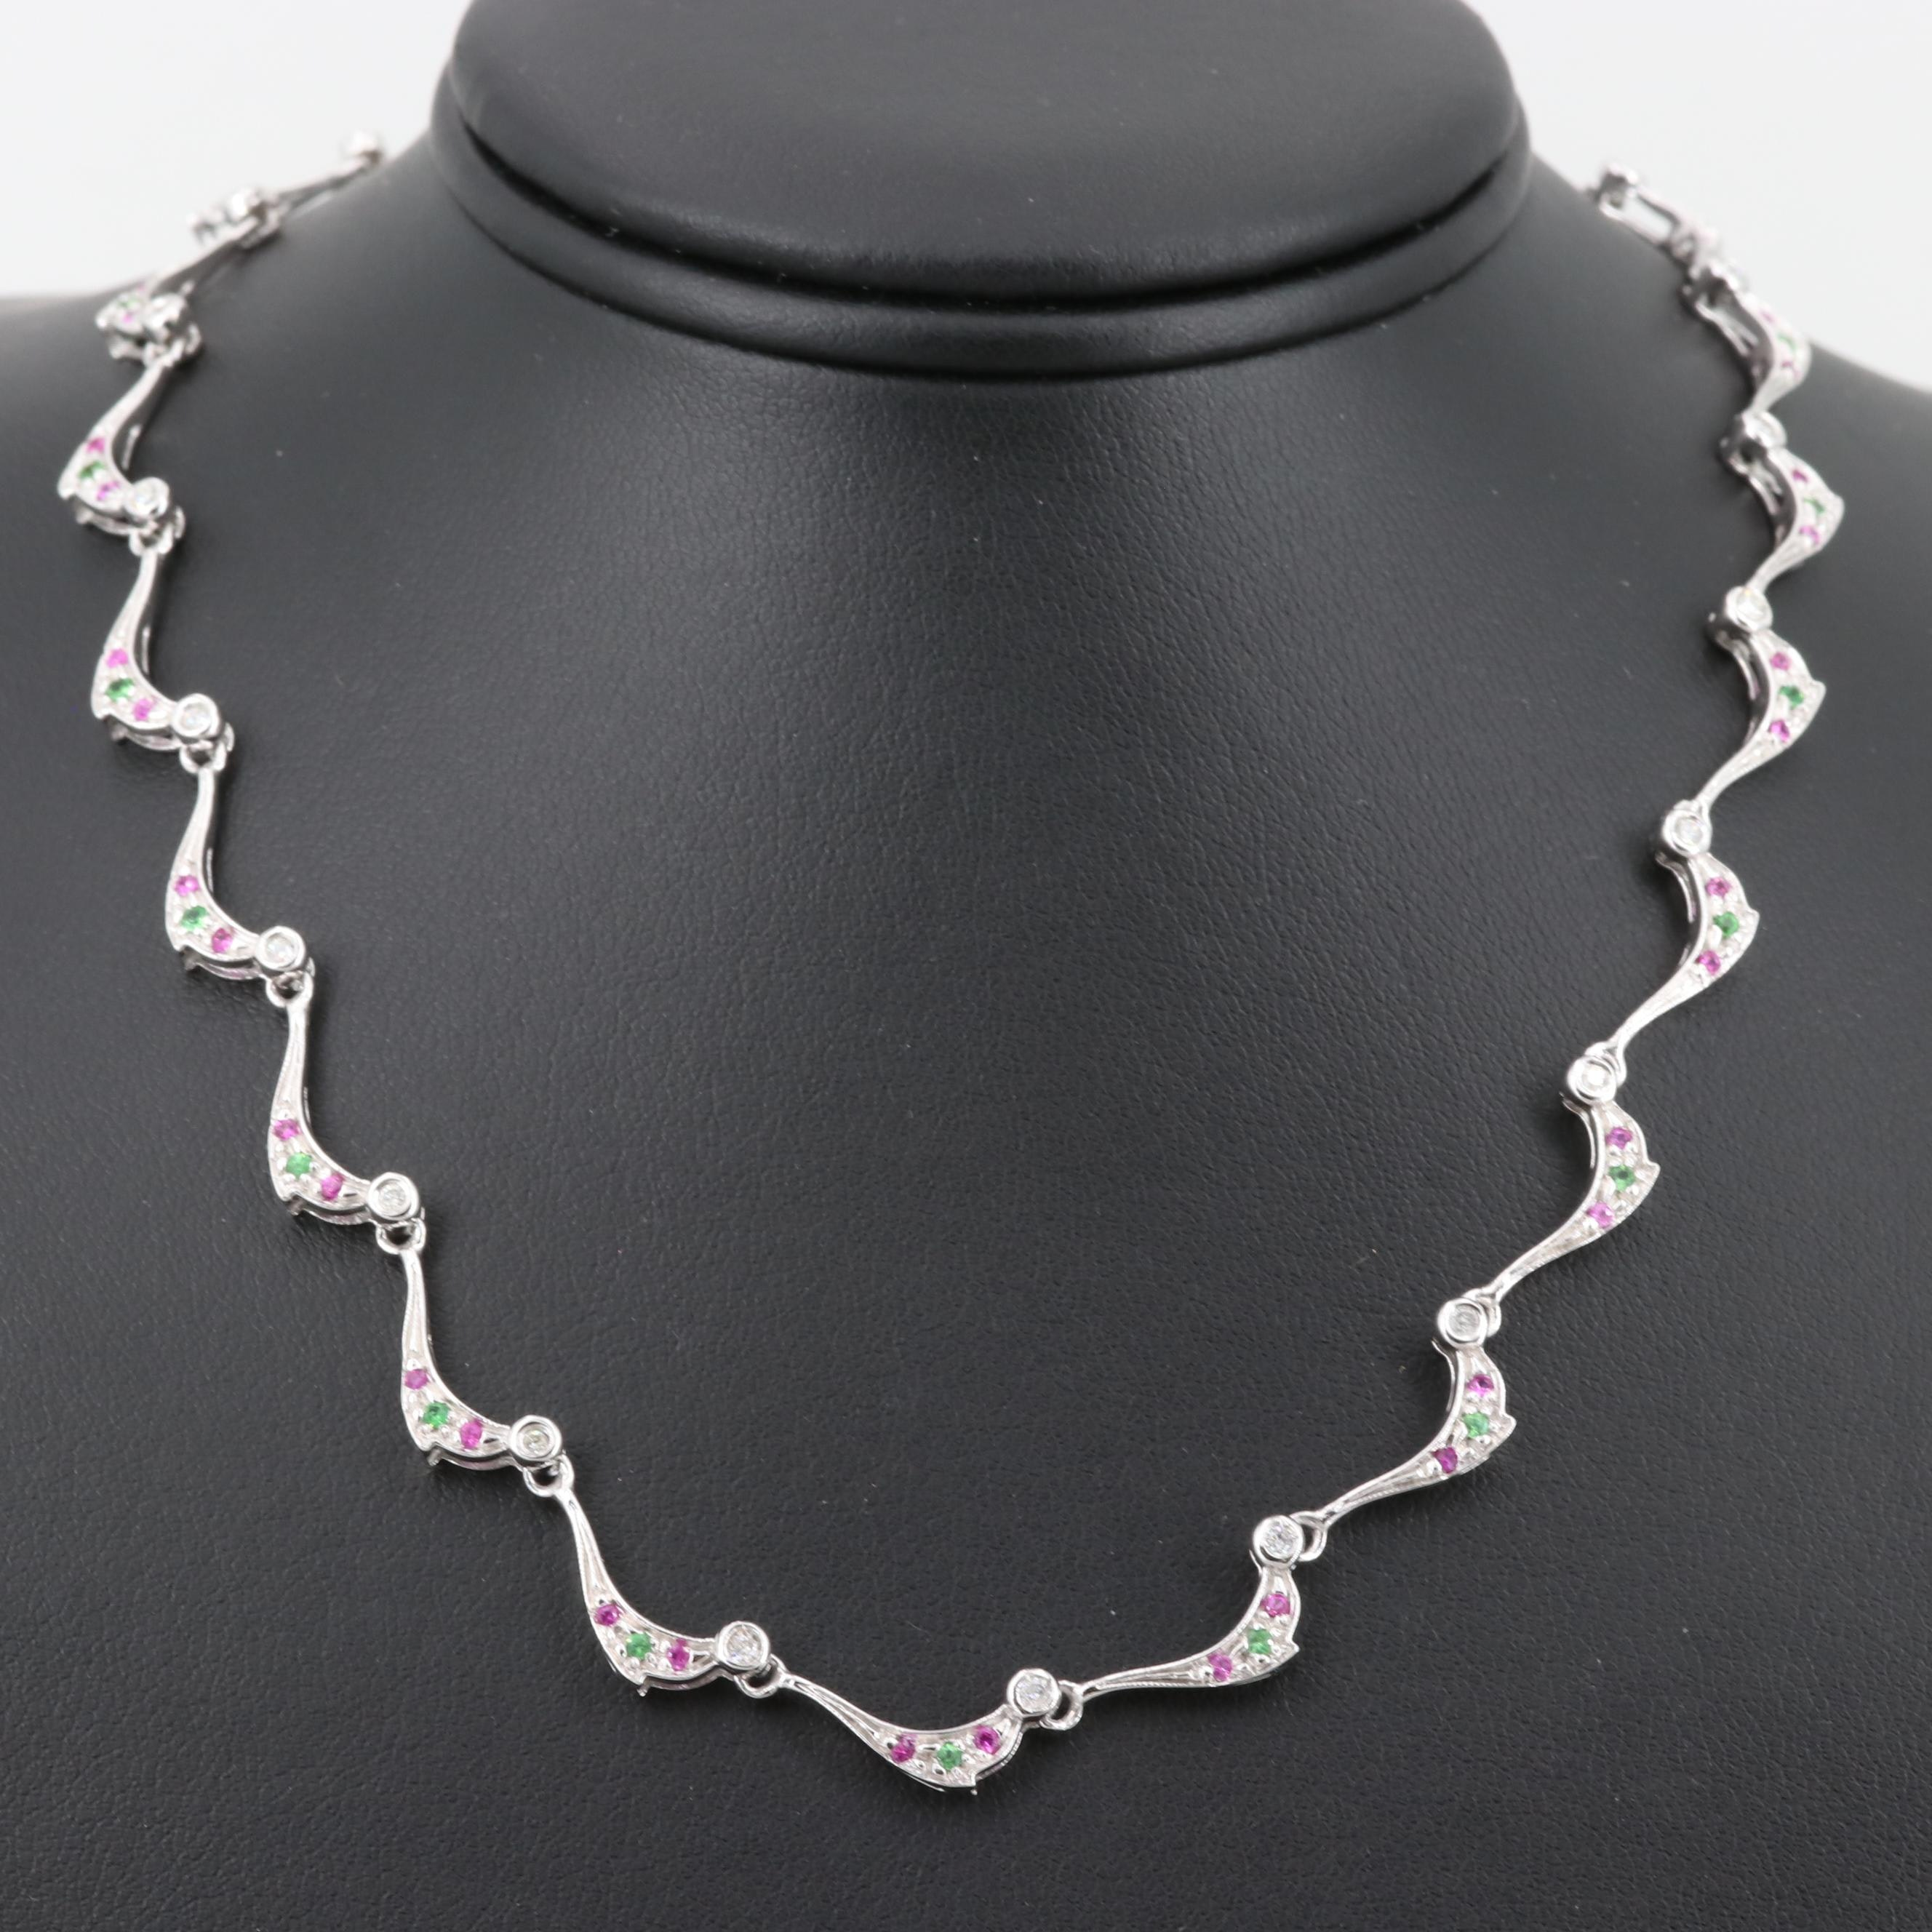 14K White Gold Diamond, Pink Sapphire and Tsavorite Necklace